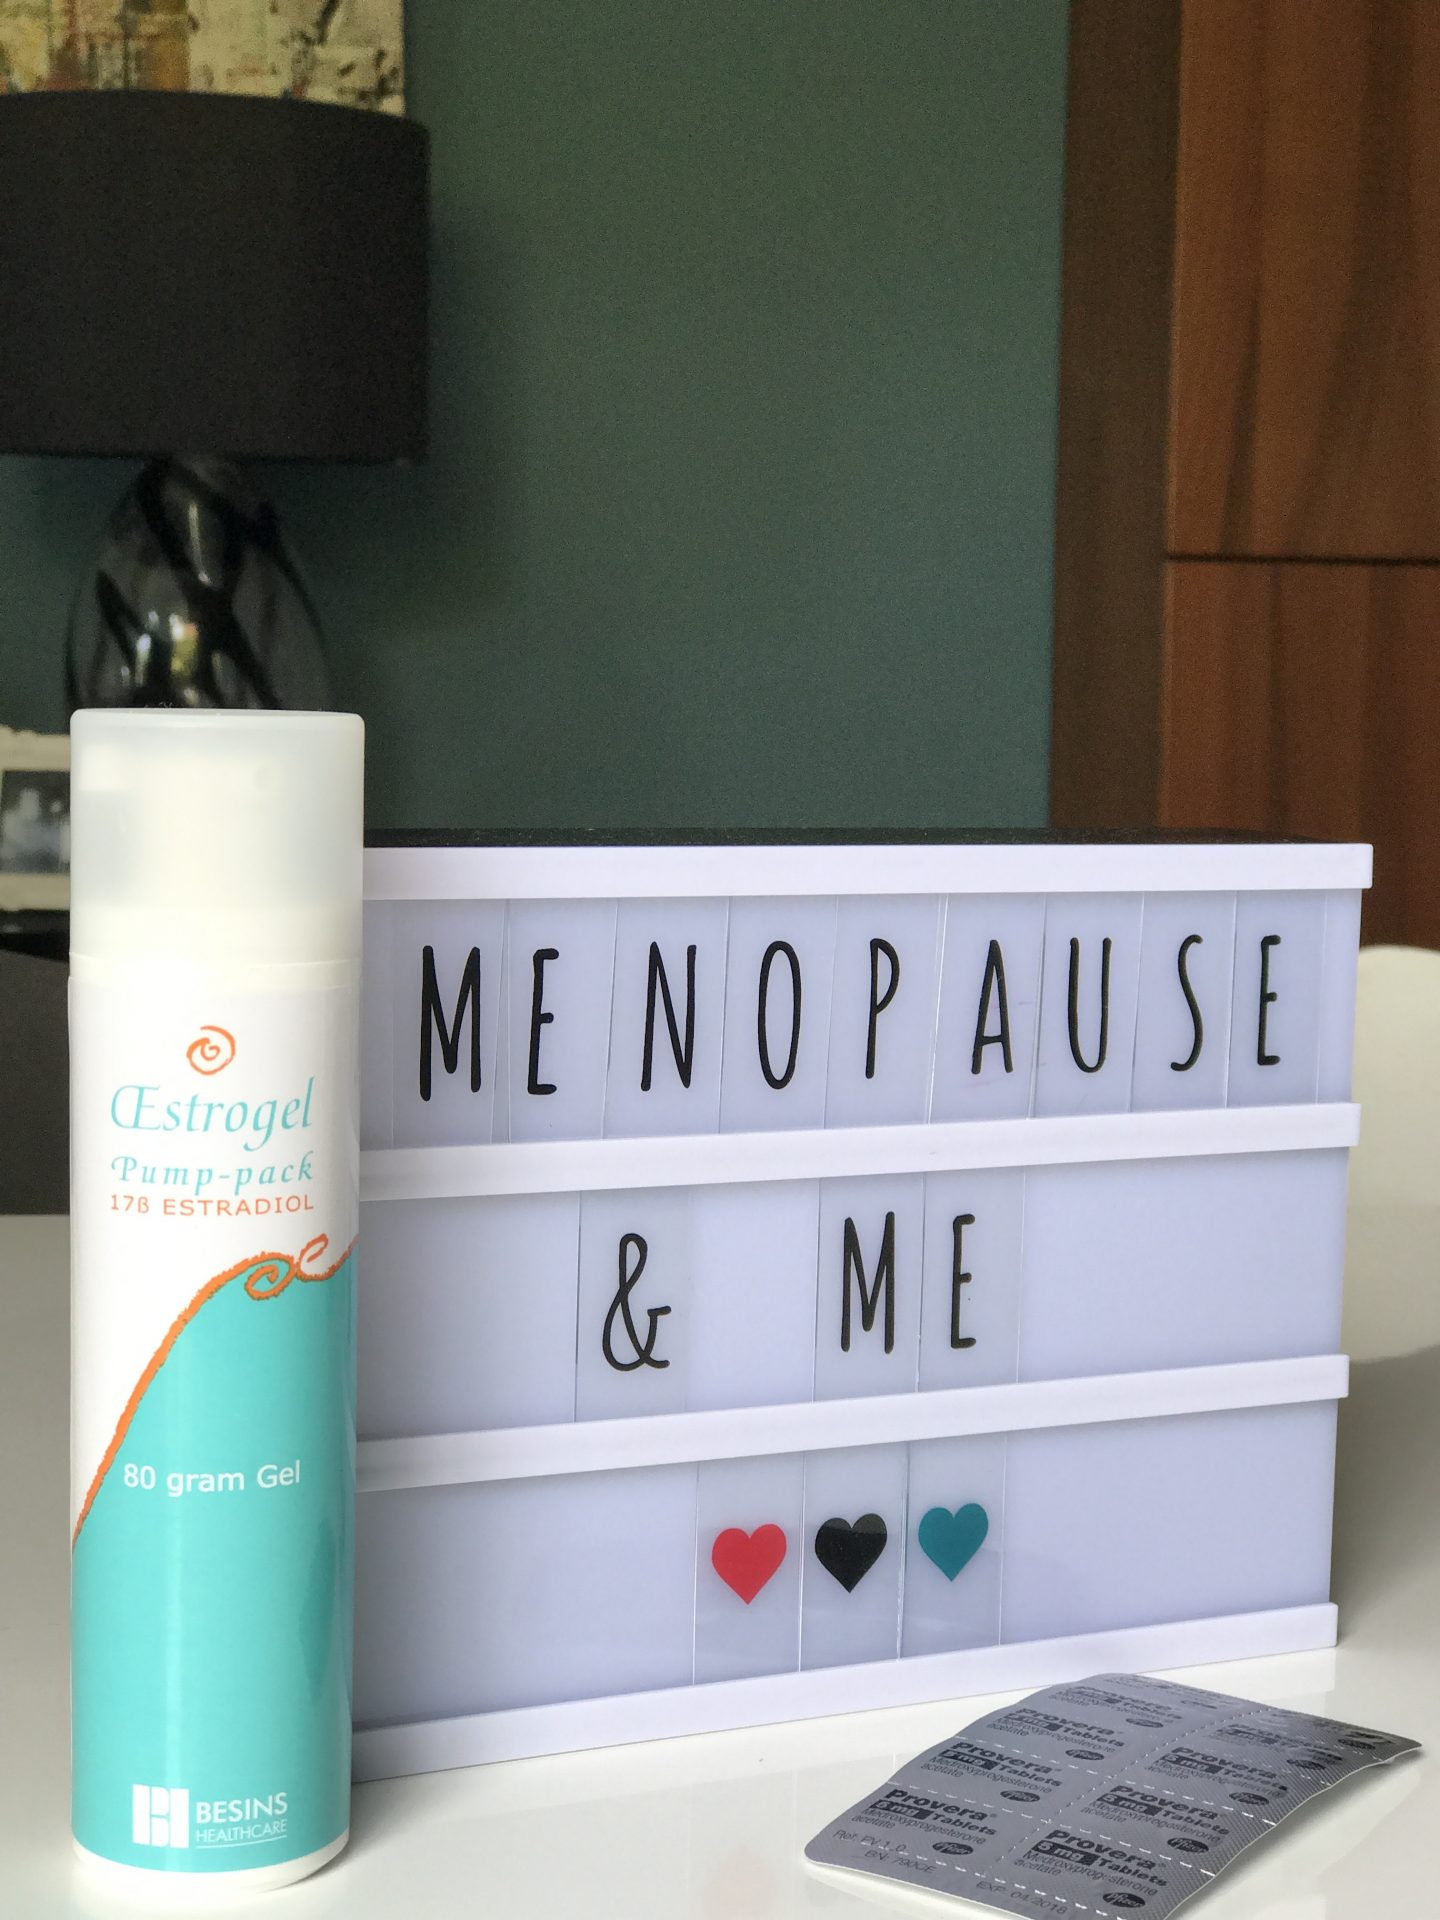 The-Menopause-And-Me